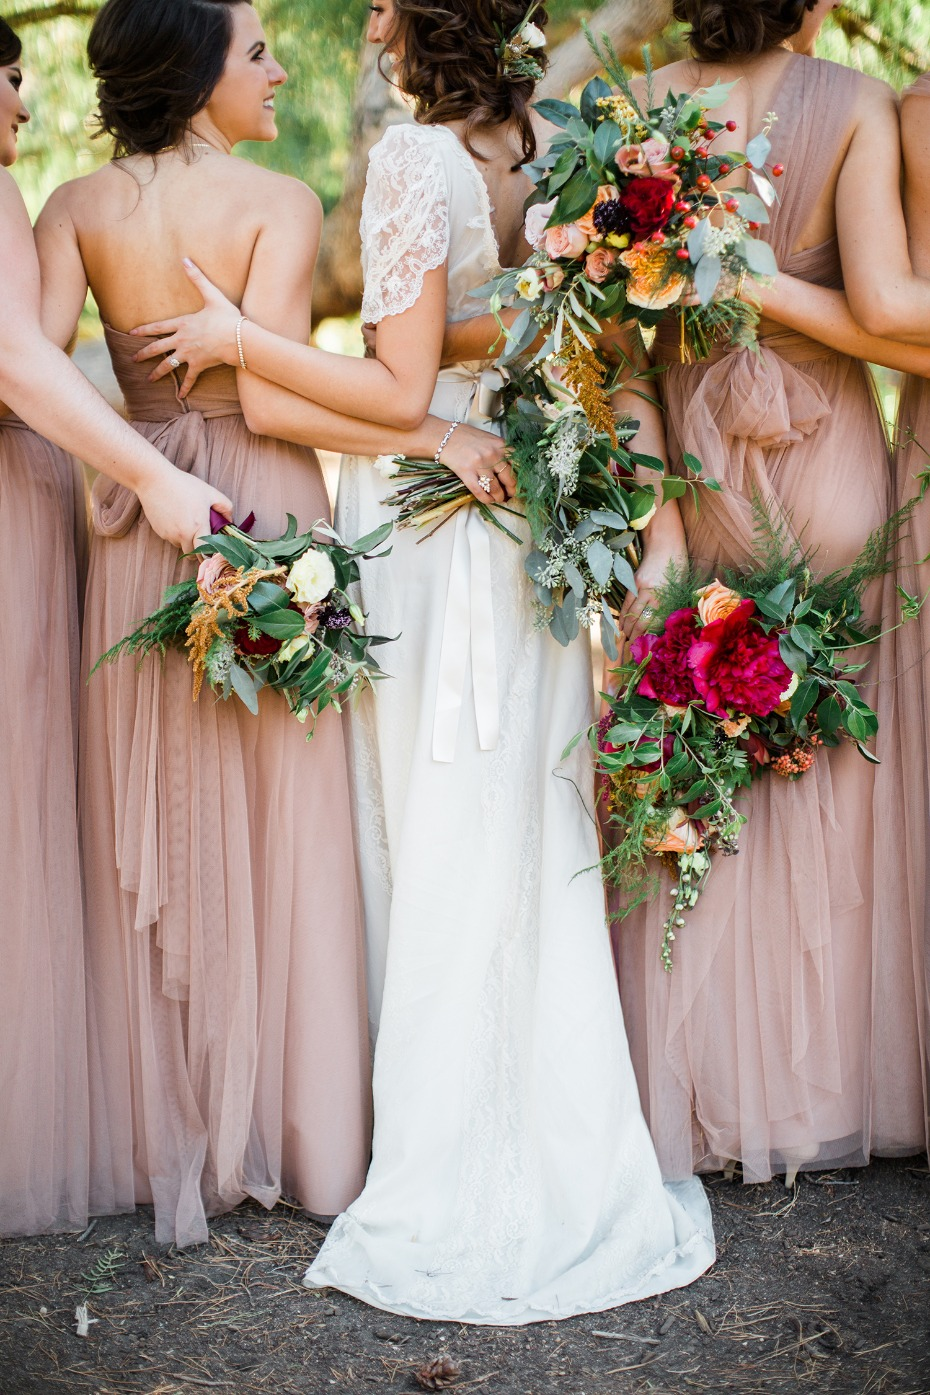 Bridal party in matching brown sugar bridesmaid dresses